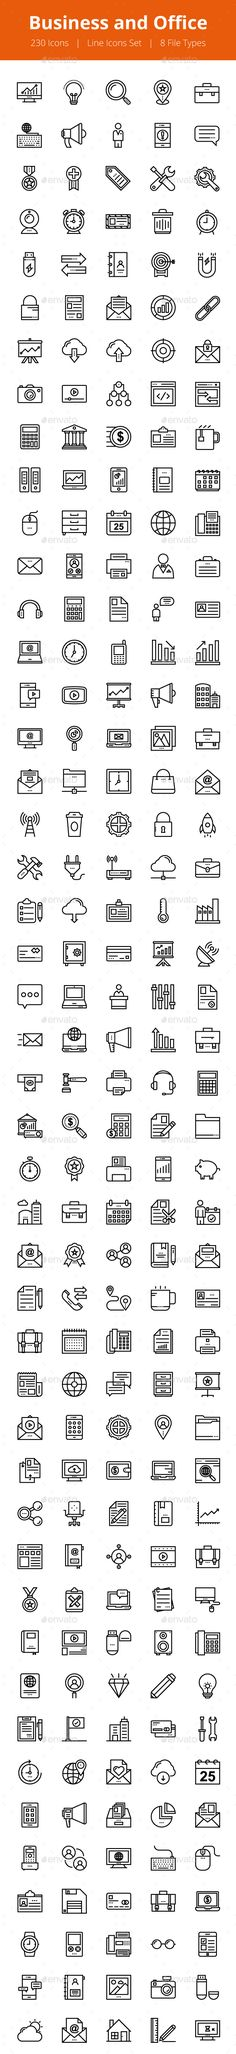 230 Business and Office Line Icons